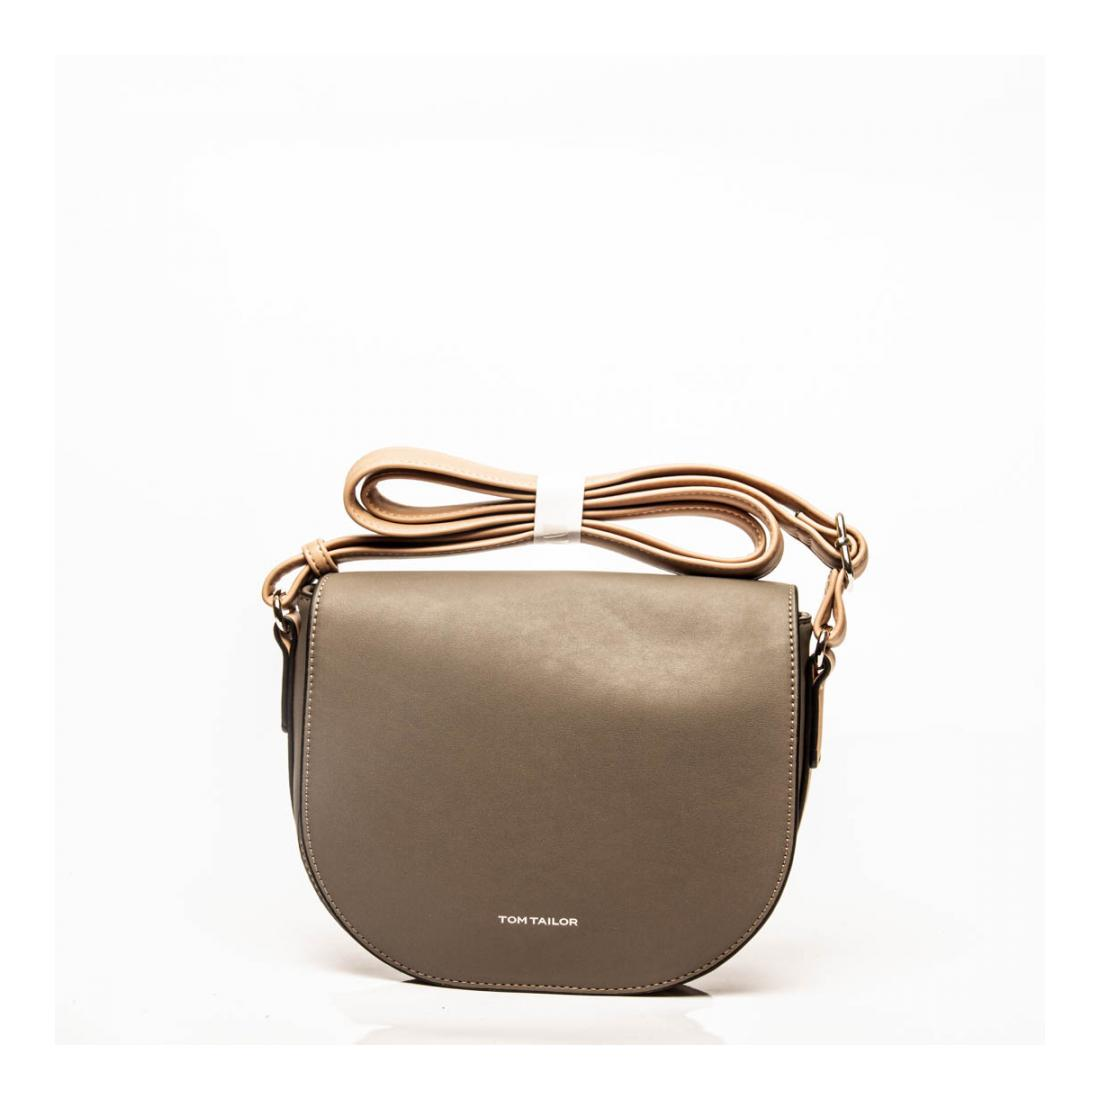 Tom Tailor Tasche Mette Flap bag